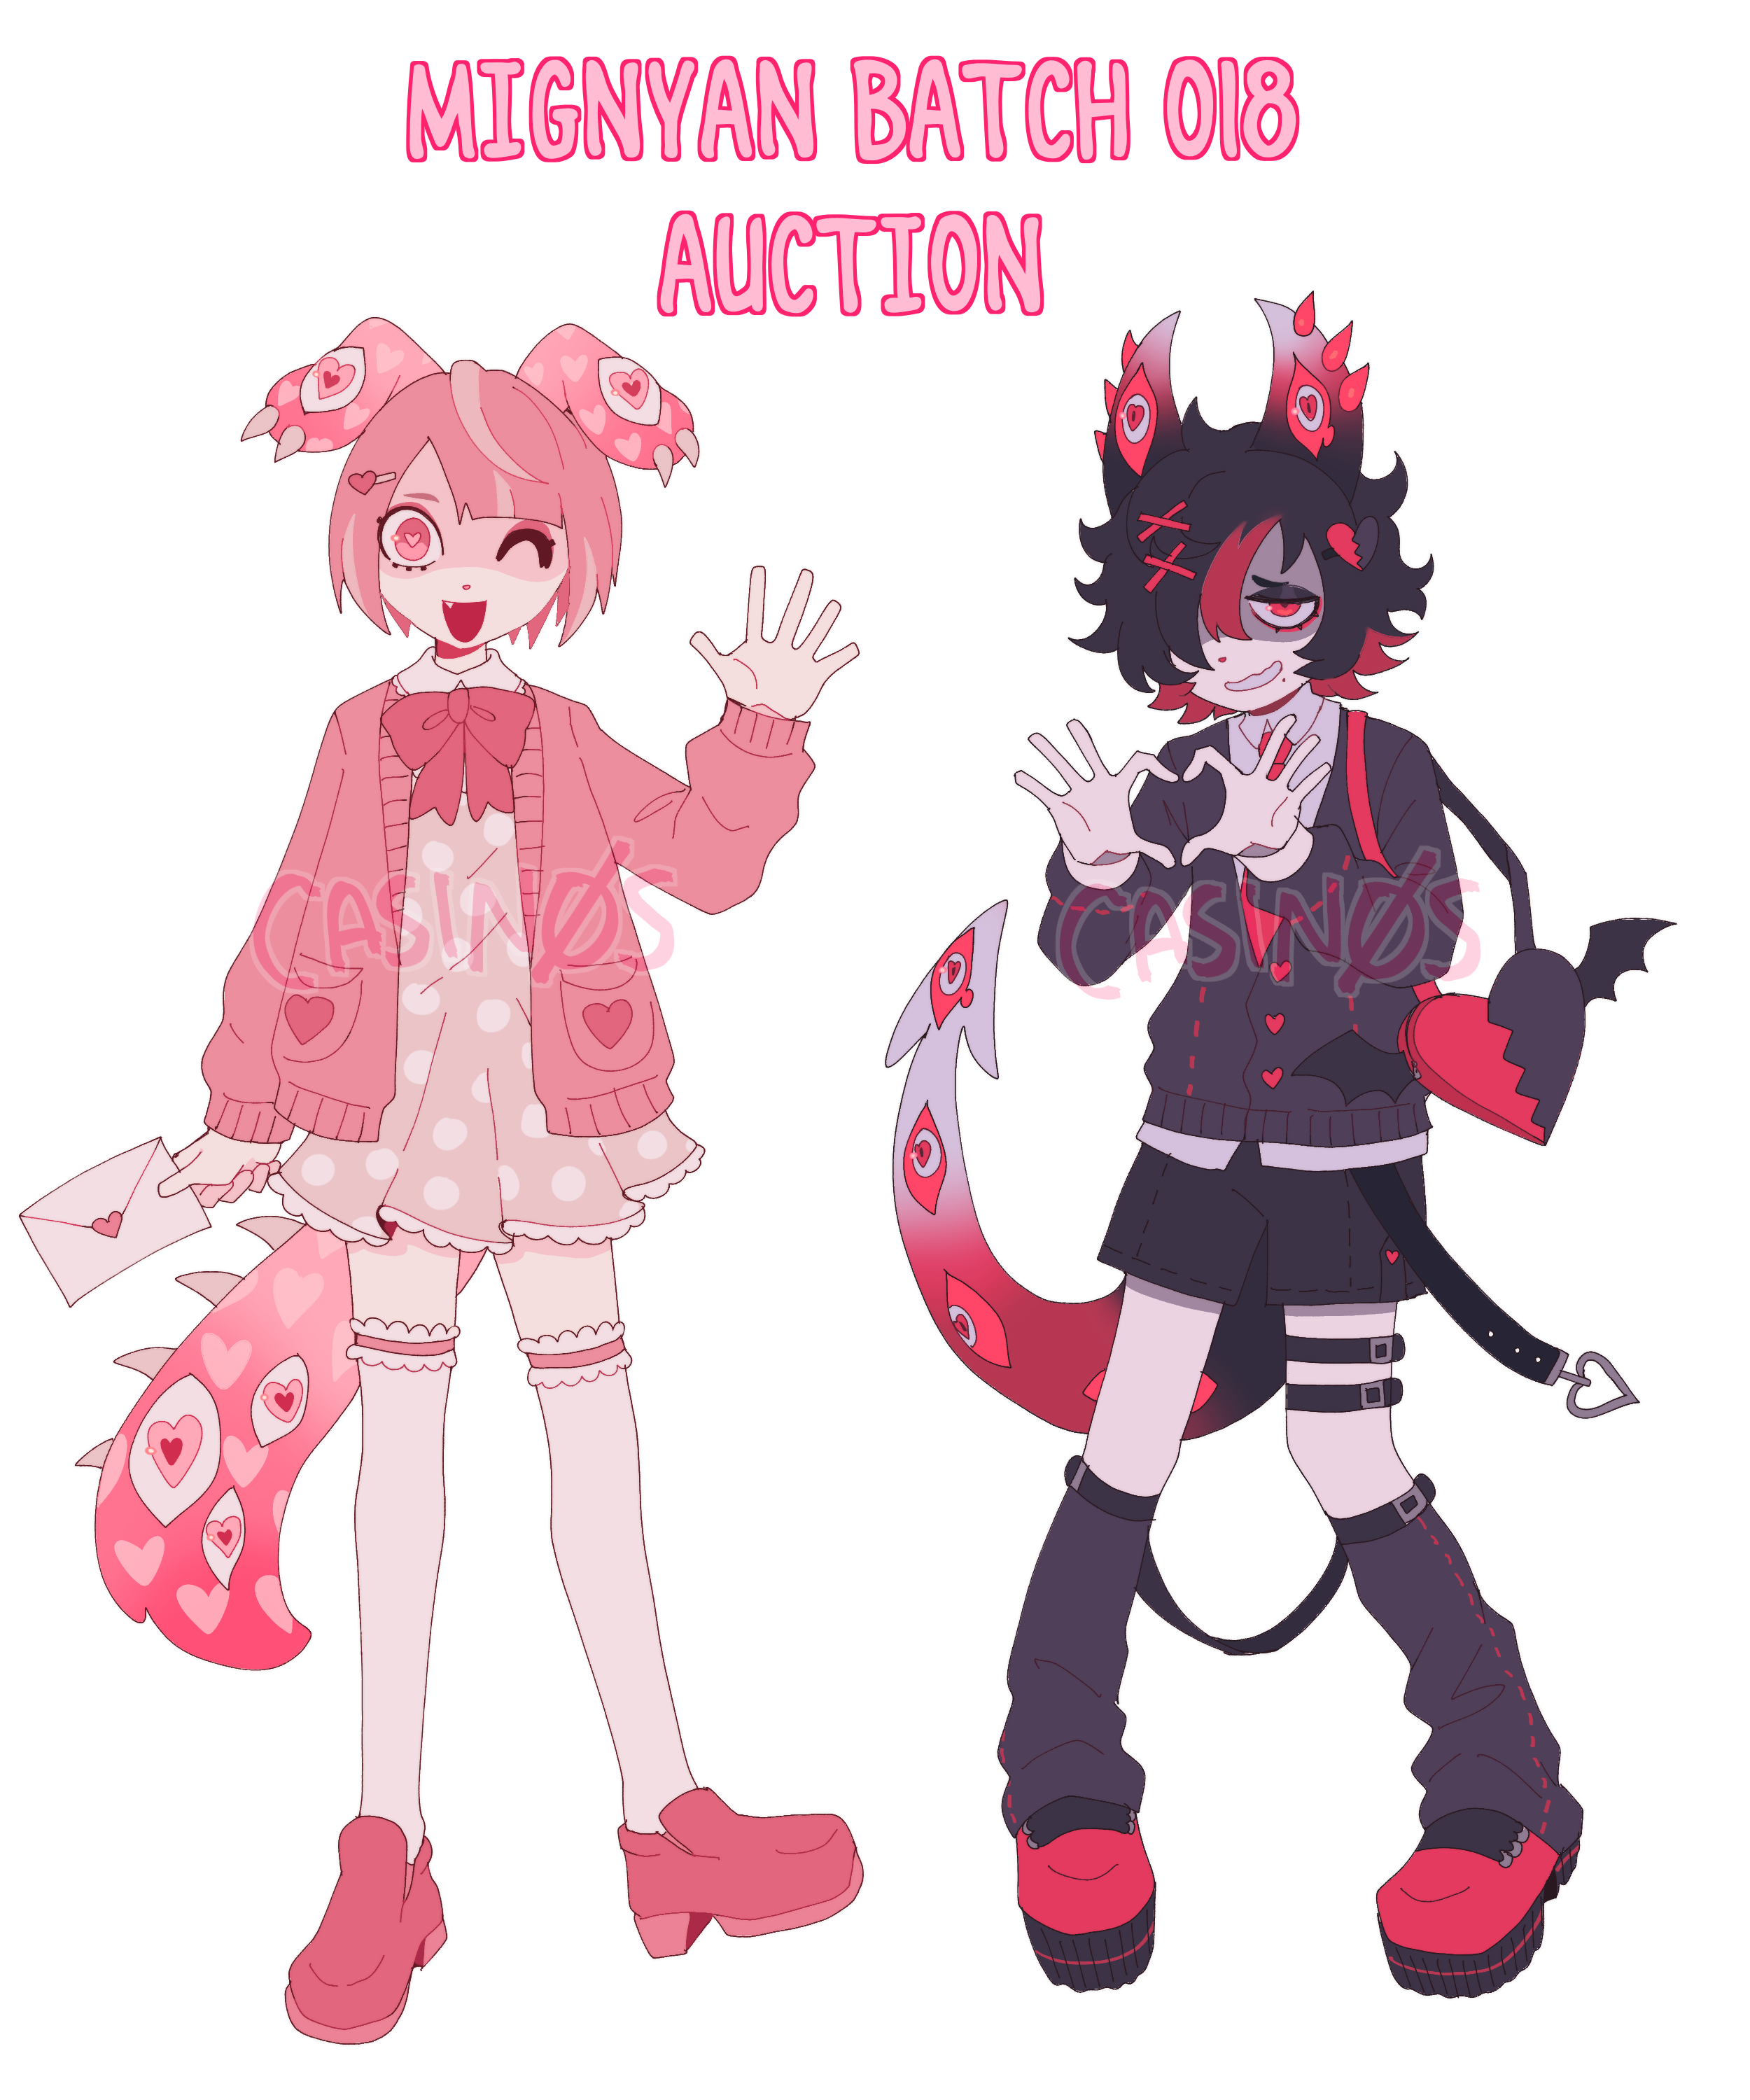 mignyan batch 018 AUCTION (CLOSED) by CASIN0S on